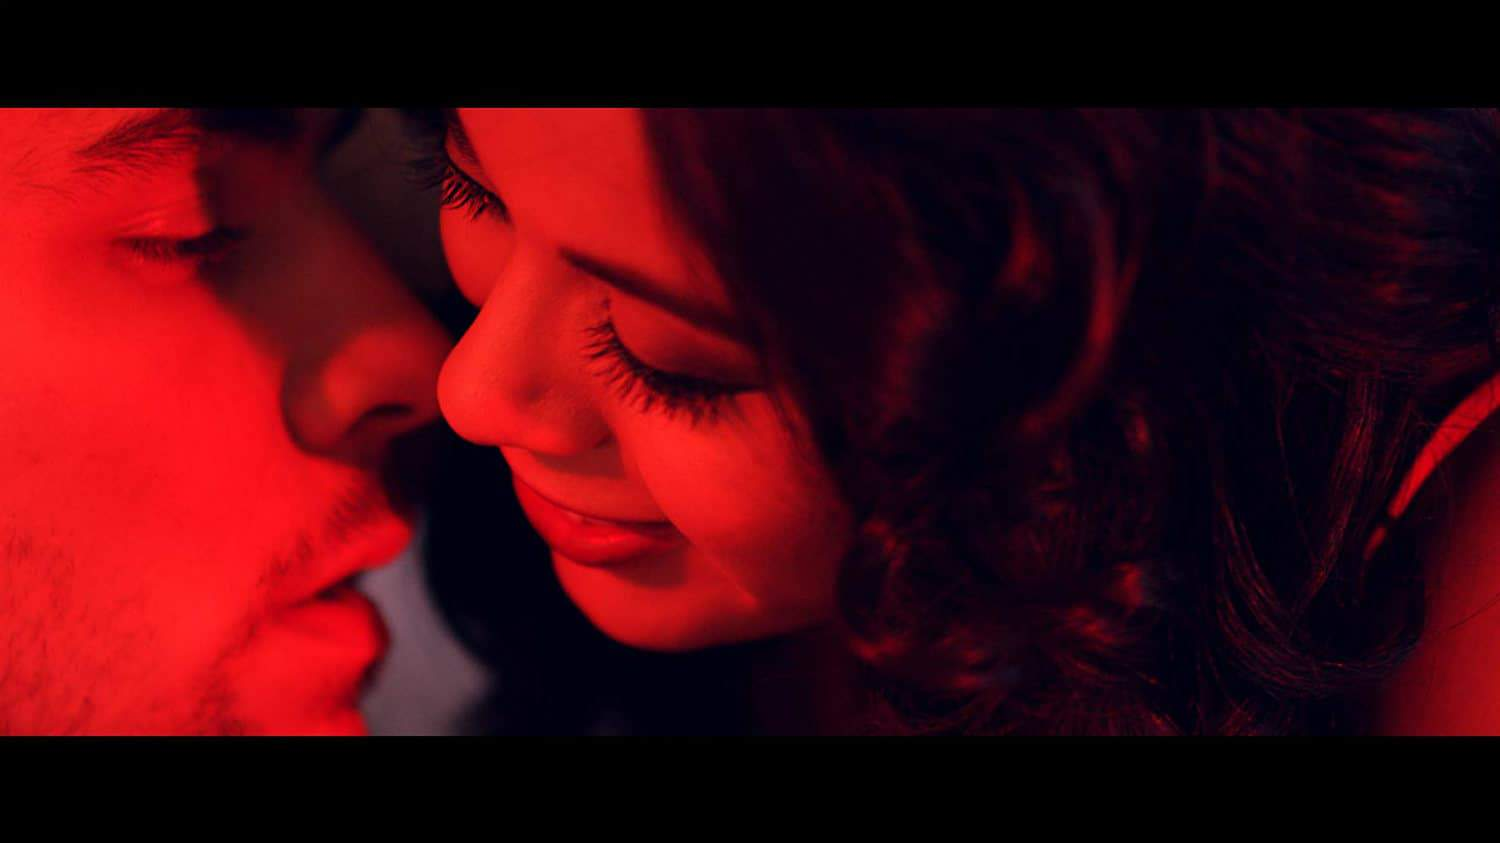 Hush Review – Can You Keep A Secret? - OC Movie Reviews - Movie Reviews, Movie News, Documentary Reviews, Short Films, Short Film Reviews, Trailers, Movie Trailers, Interviews, film reviews, film news, hollywood, indie films, documentaries